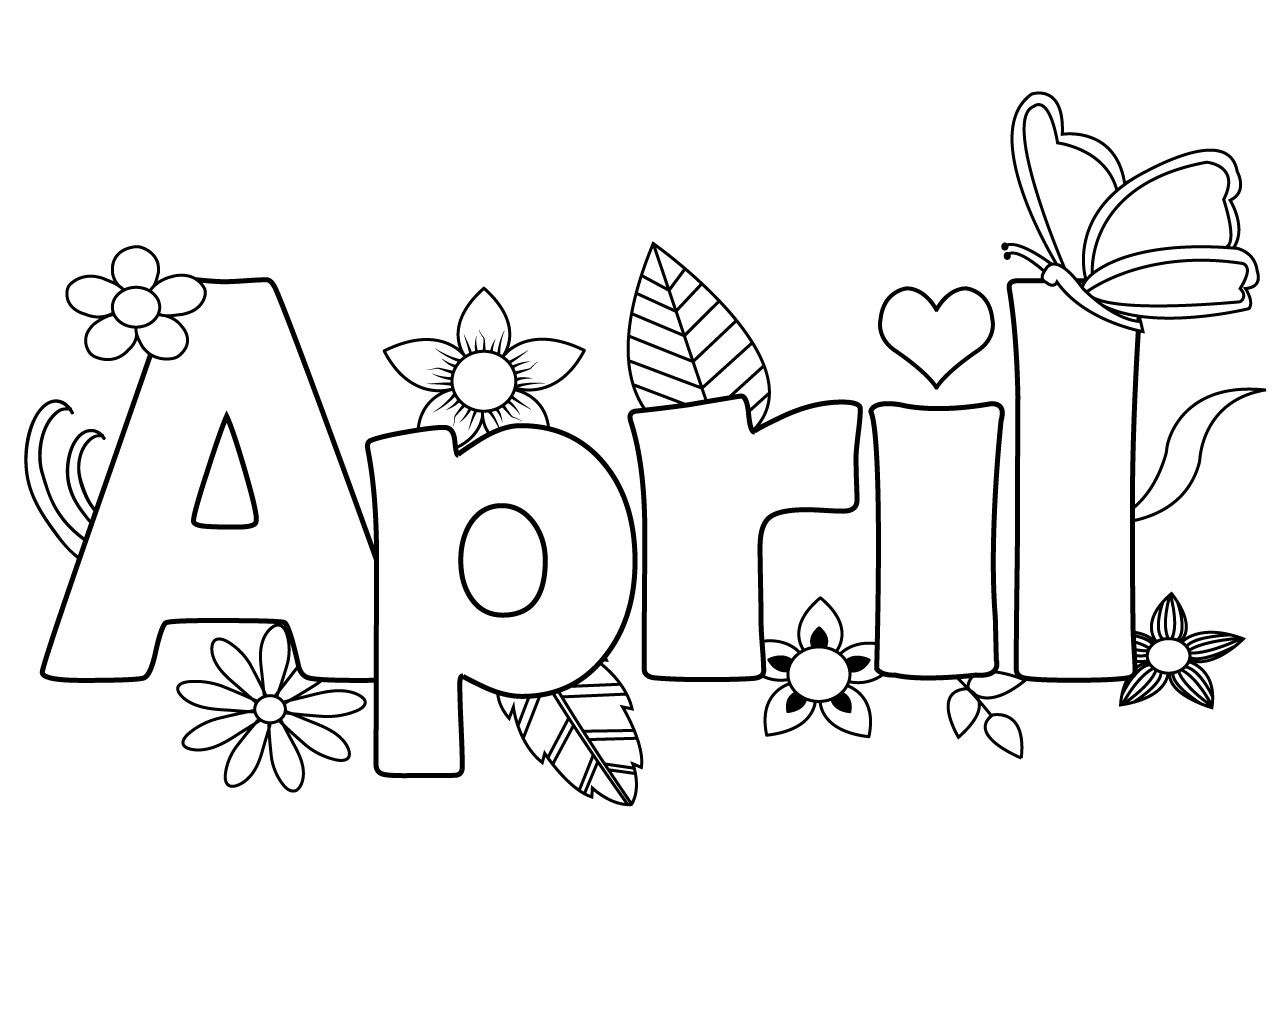 april coloring pages april clipart at getdrawings free download pages april coloring